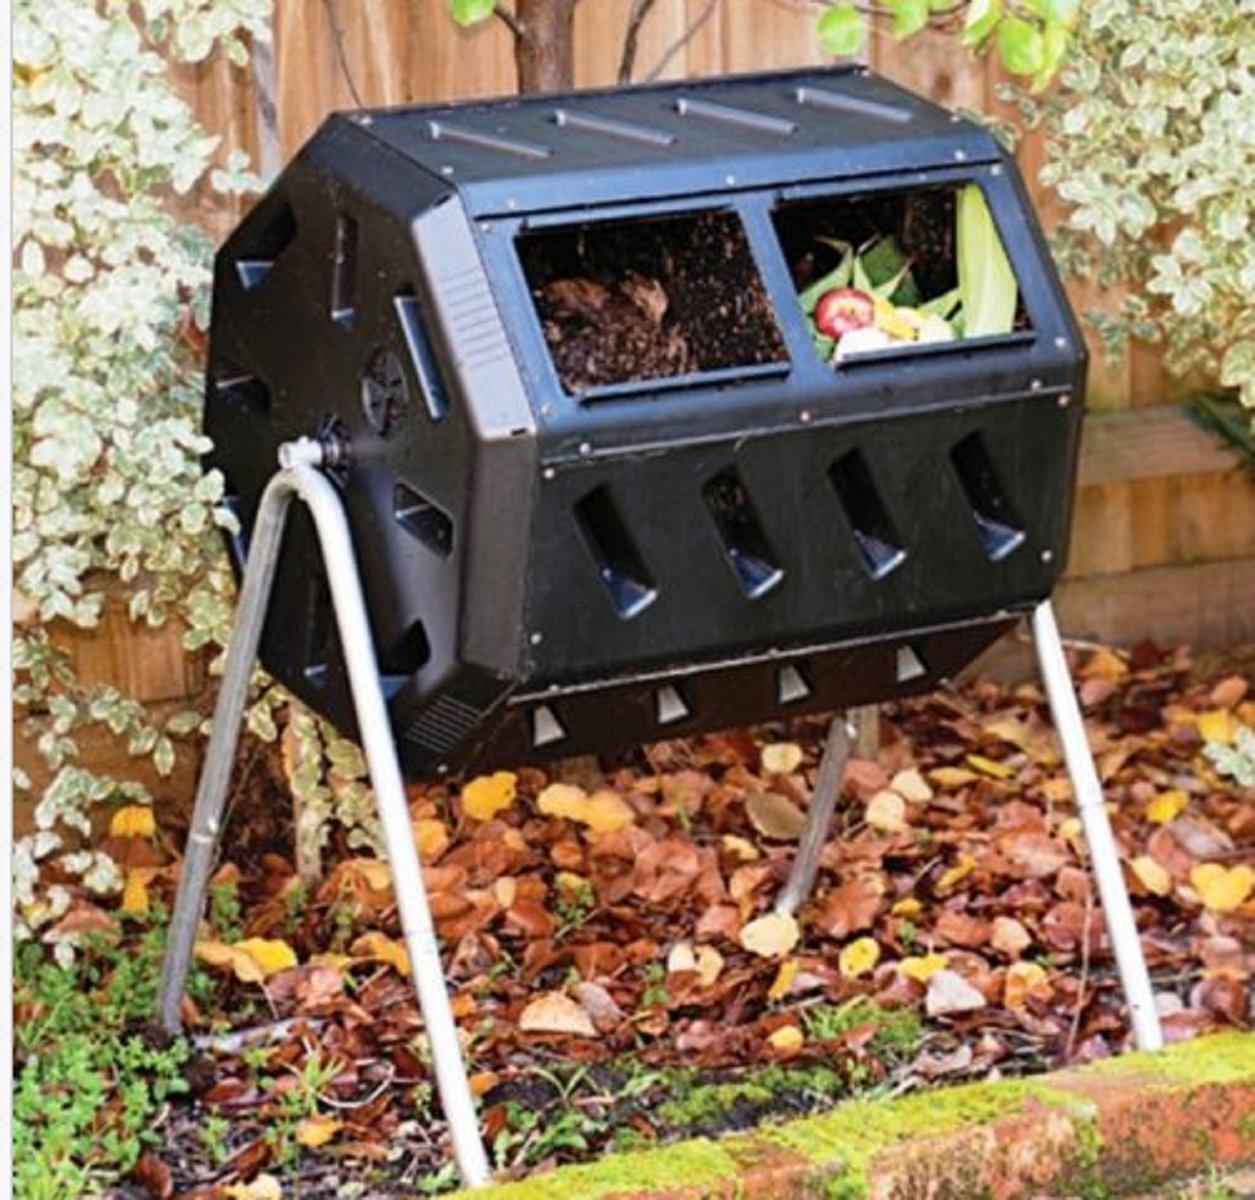 USA Premium Store Outdoor Compost Tumbler Composter Recycled Plastic 2 Chambers Garden Waste Bin